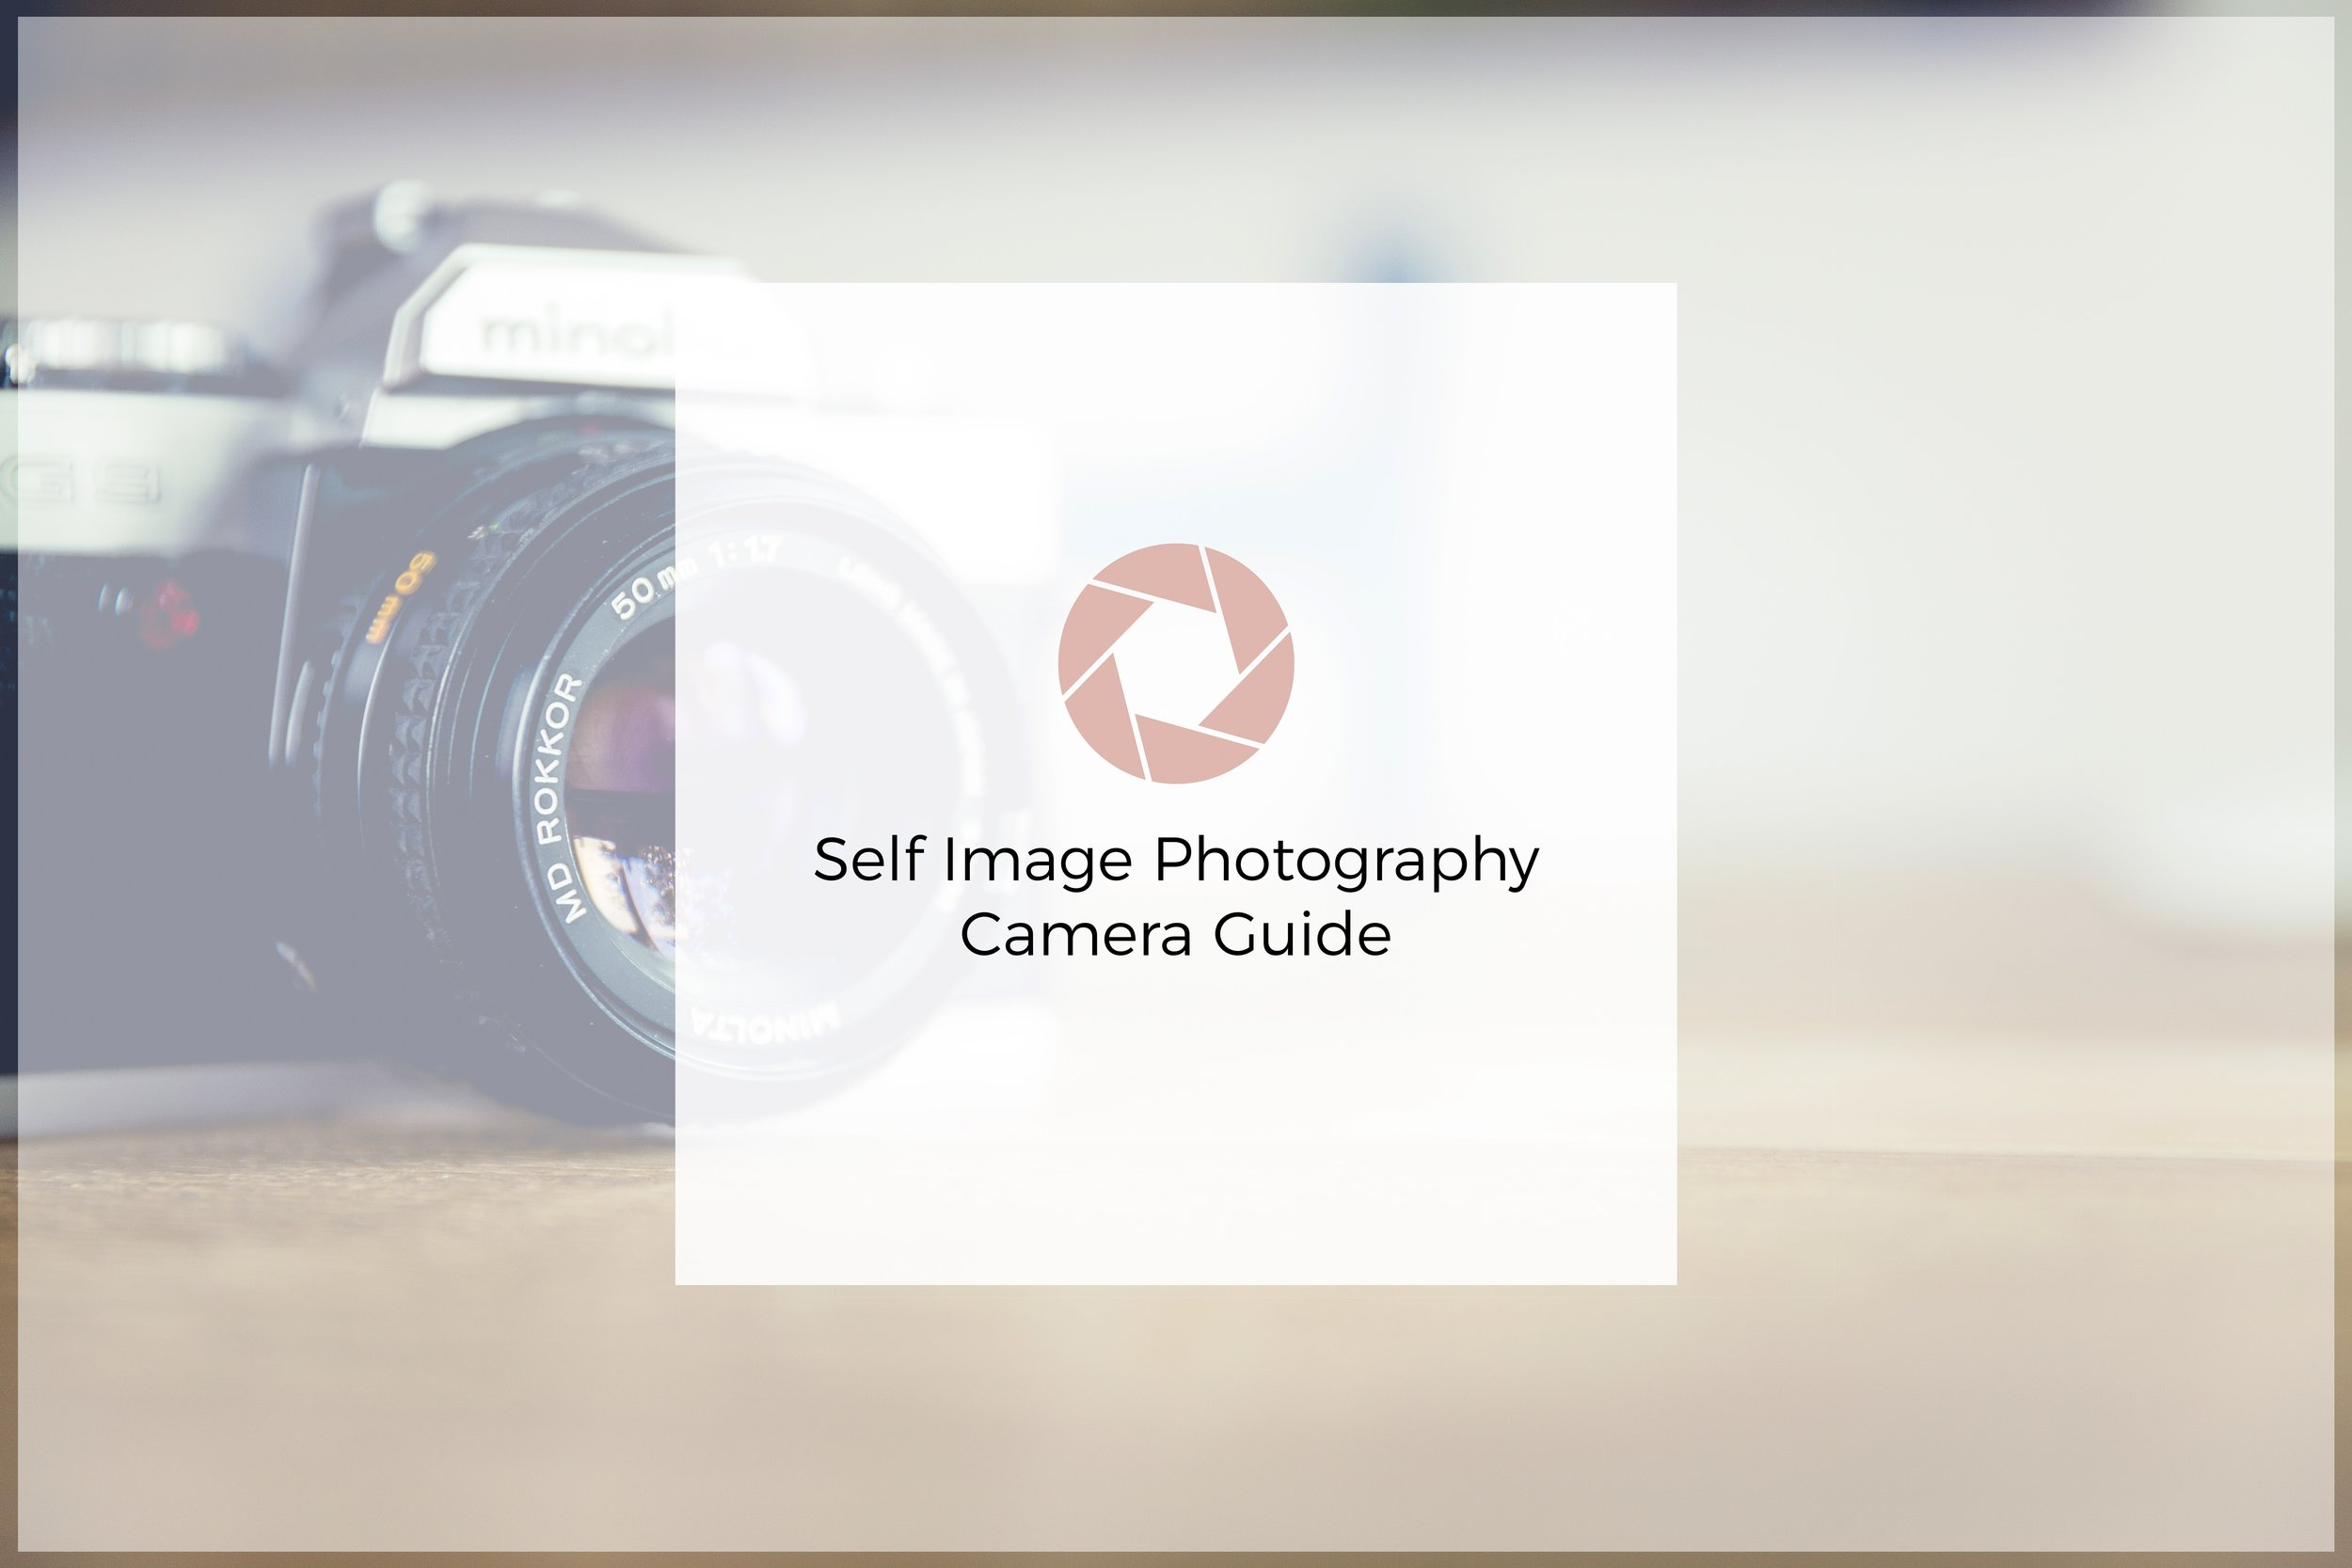 Manhattan beach family photographer offering a free camera guide with newsletter sign up